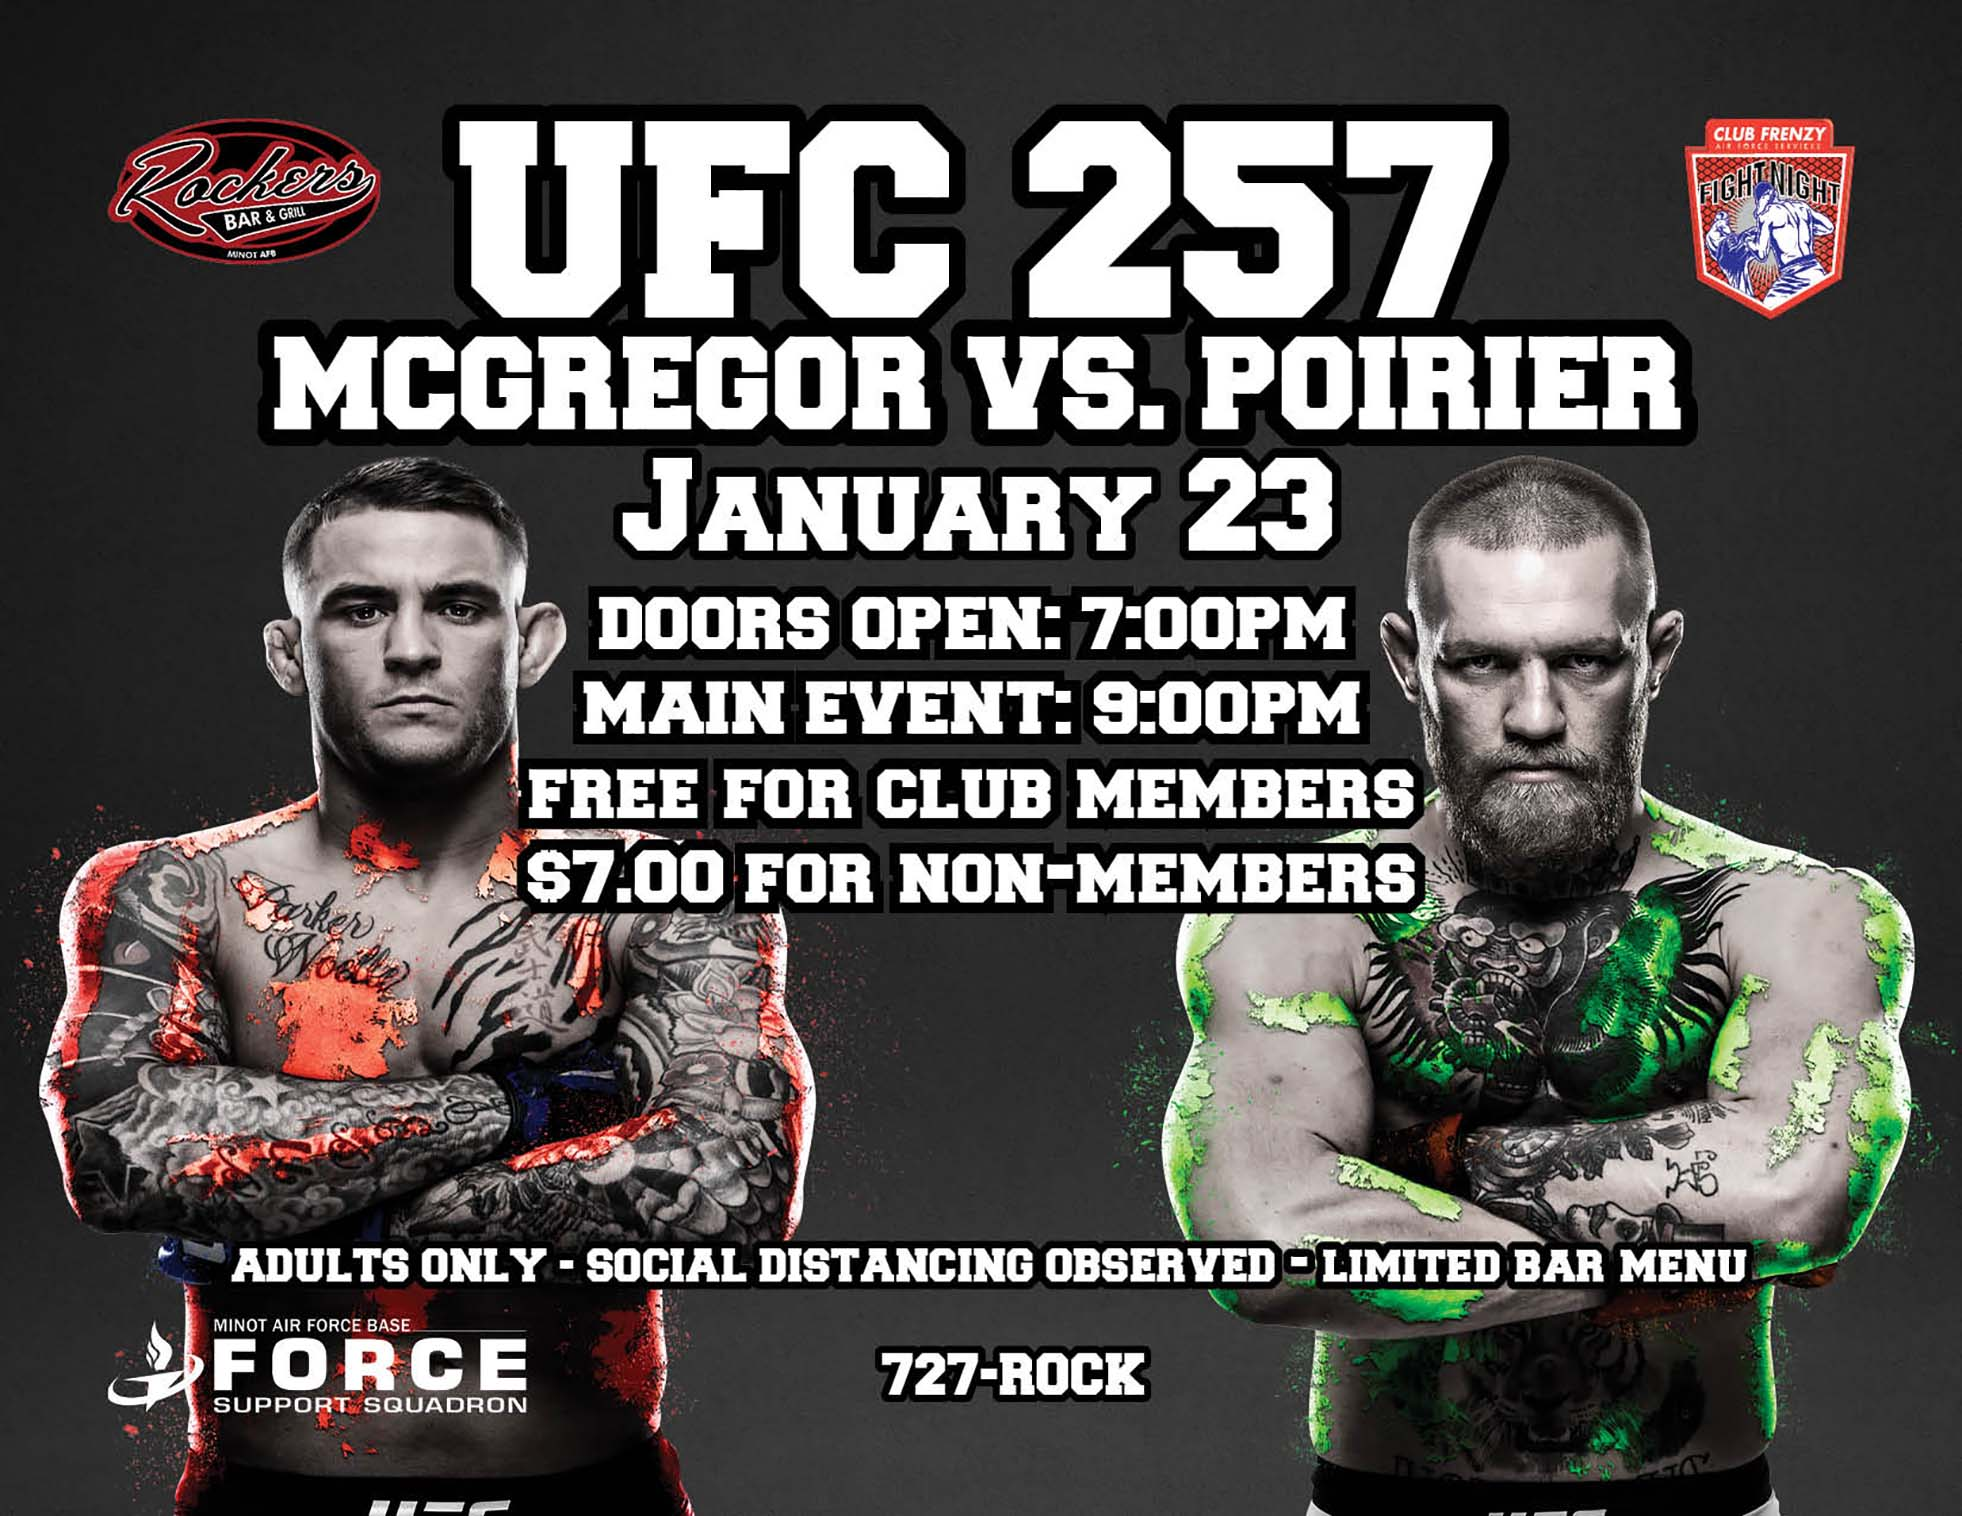 UFC 257: McGregor vs. Poirier